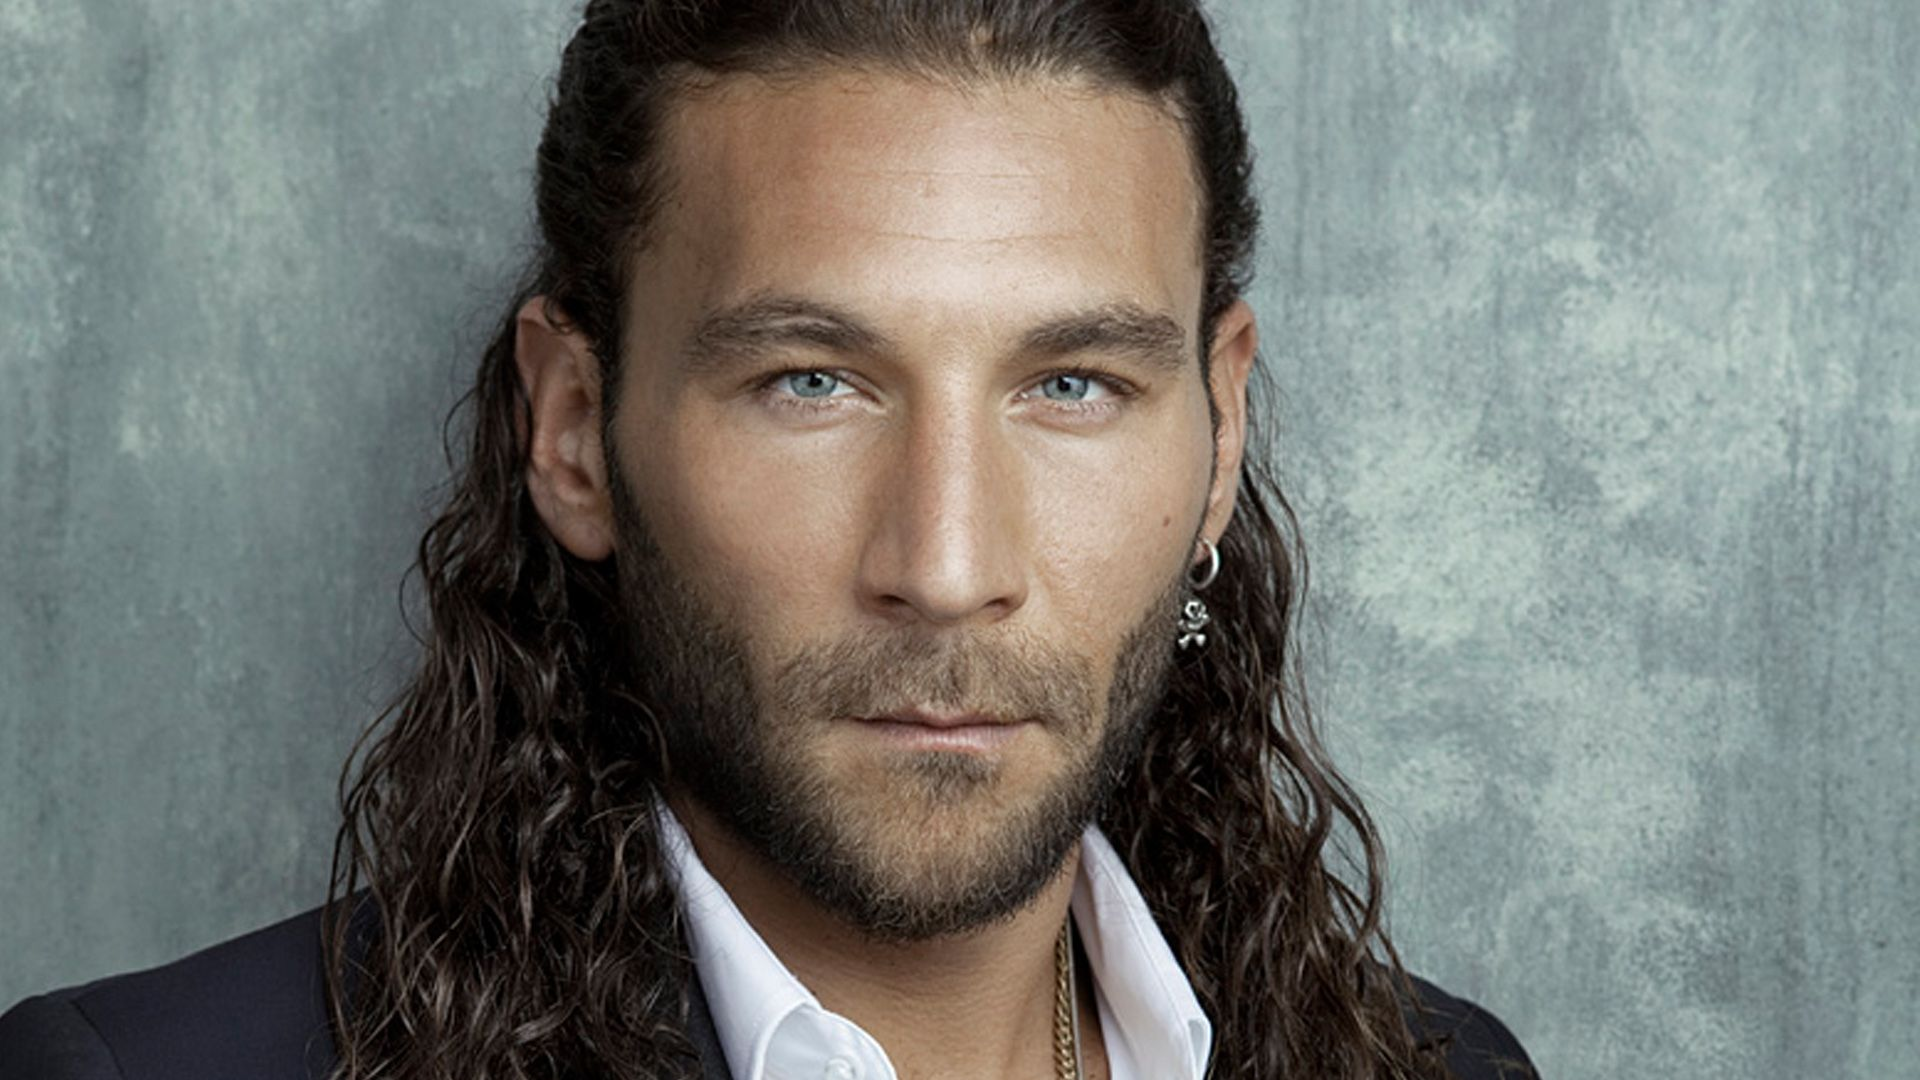 zach mcgowan height